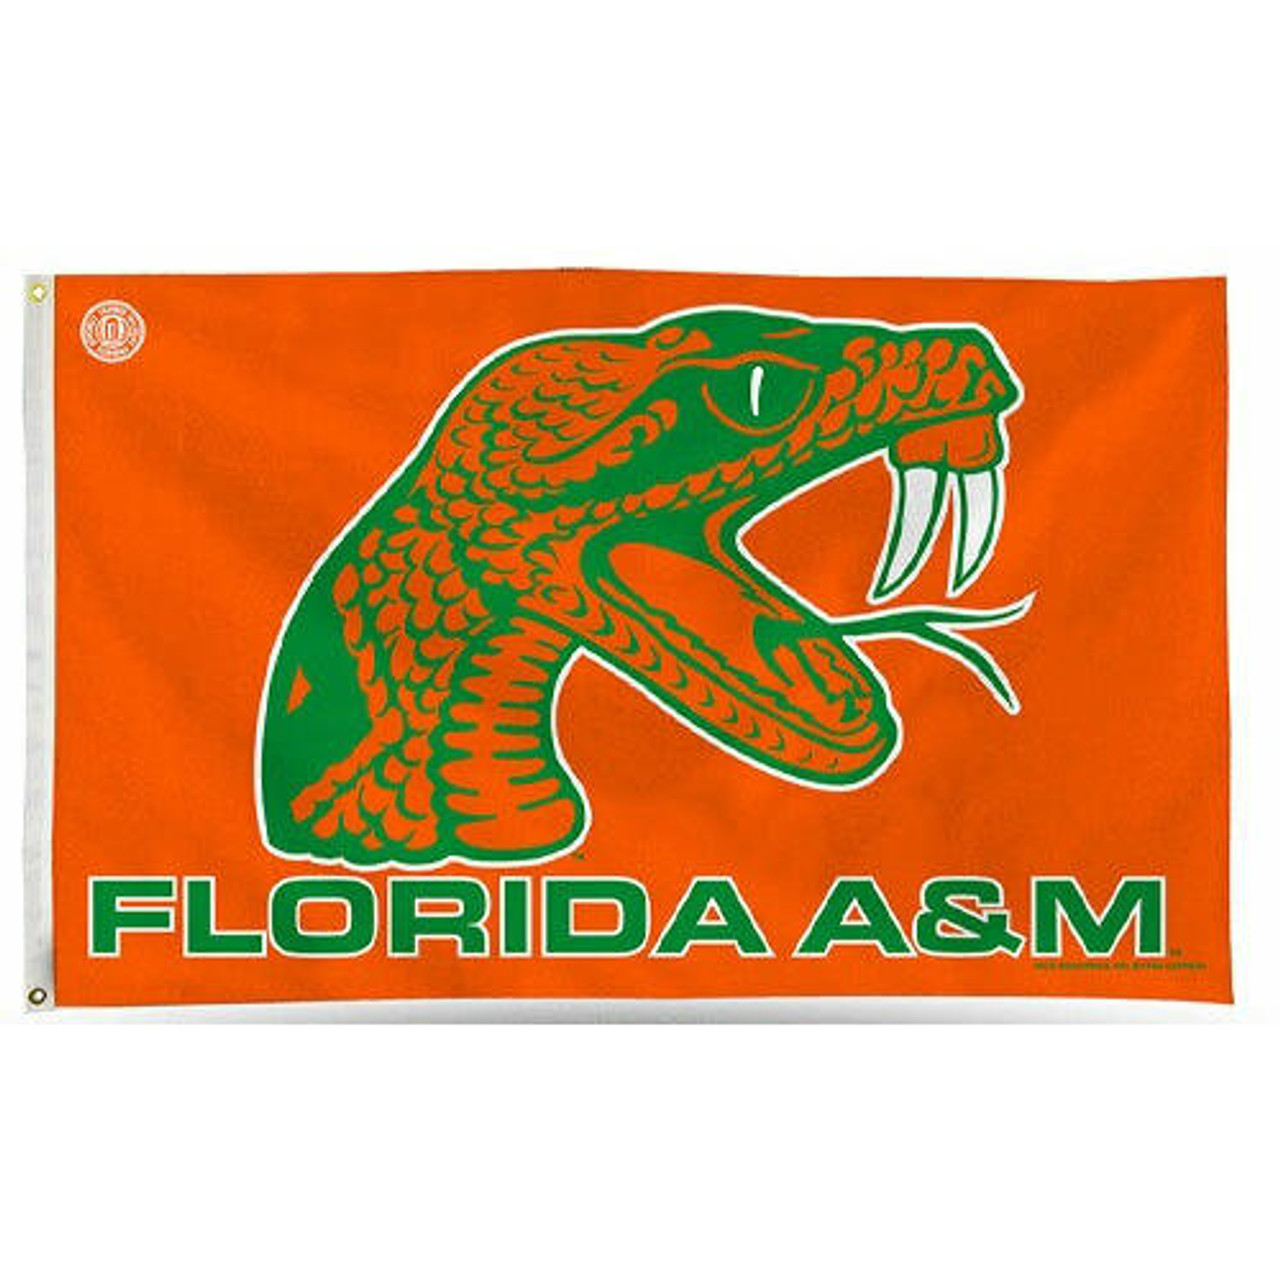 Florida A & M University Flag with orange and green rattler mascot in center and green Florida A&M text at bottom center below mascot.  Orange background.